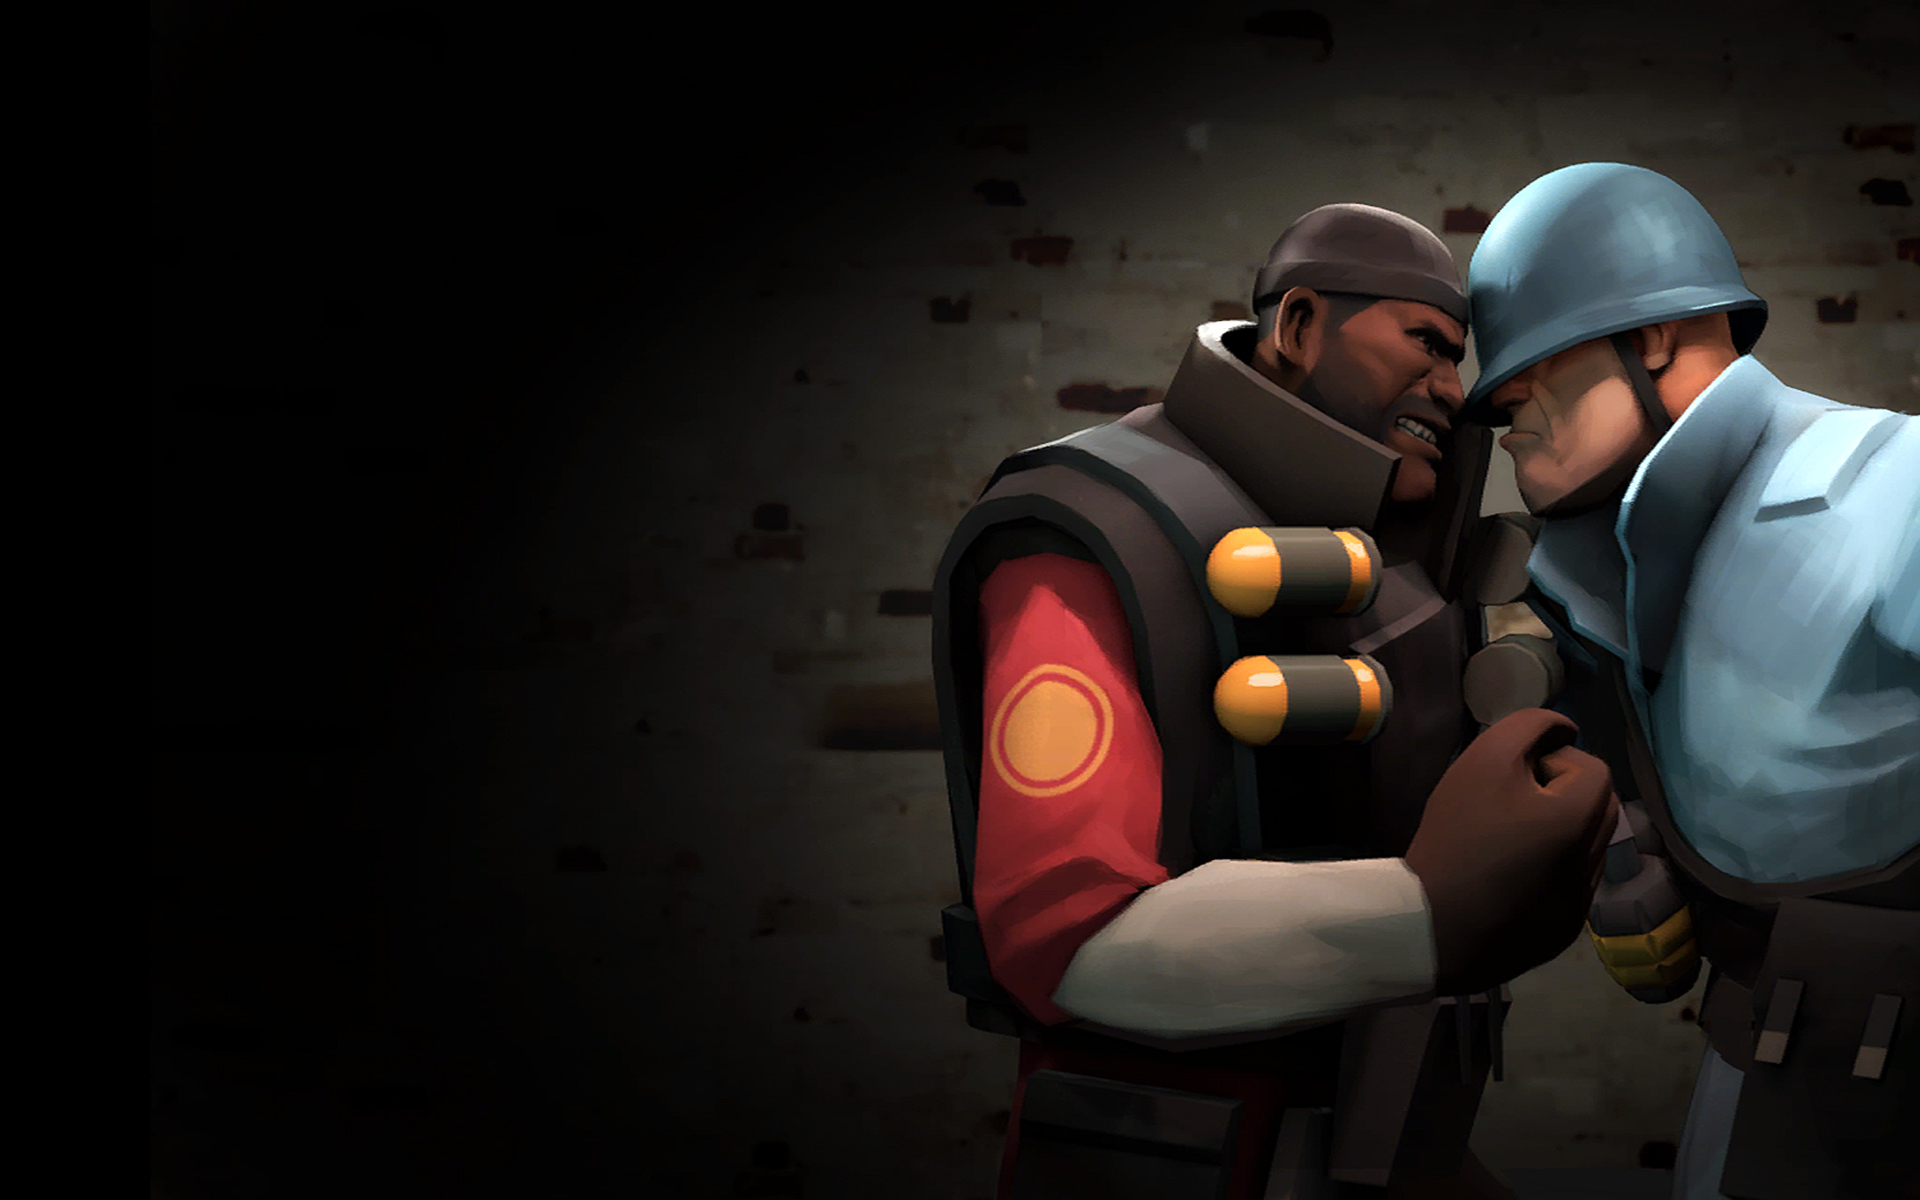 Demoman tf2 team fortress 2 soldier tf2 wallpaper 1920x1200 1920x1200